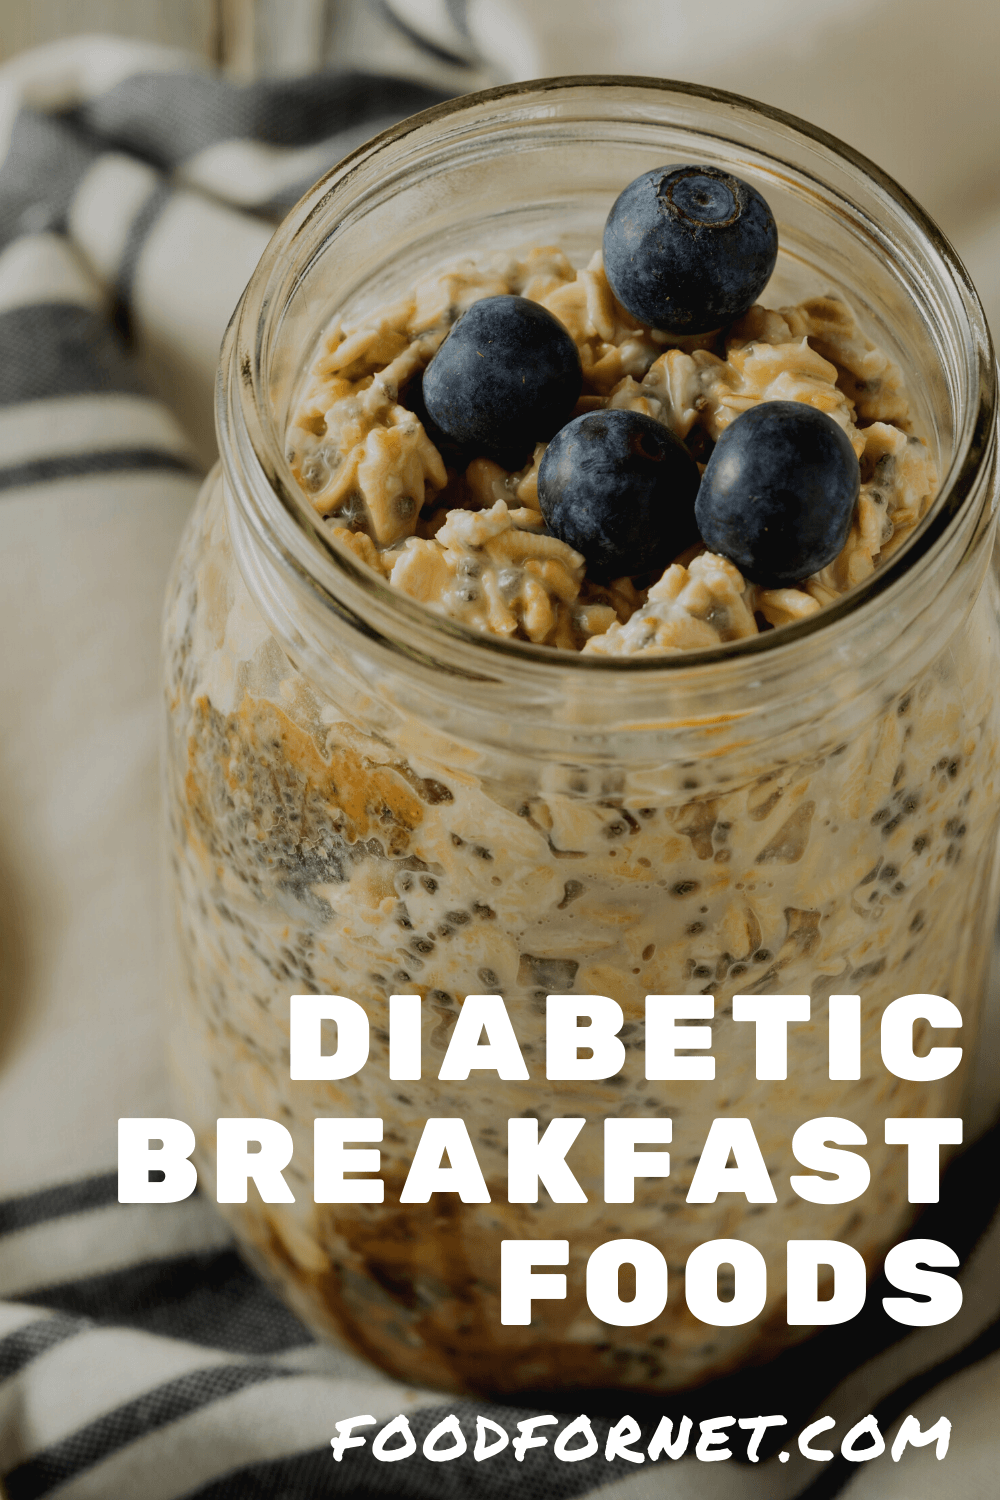 22 Diabetic Breakfast Foods To Get You Going Without Spiking Your Blood Sugar Food For Net